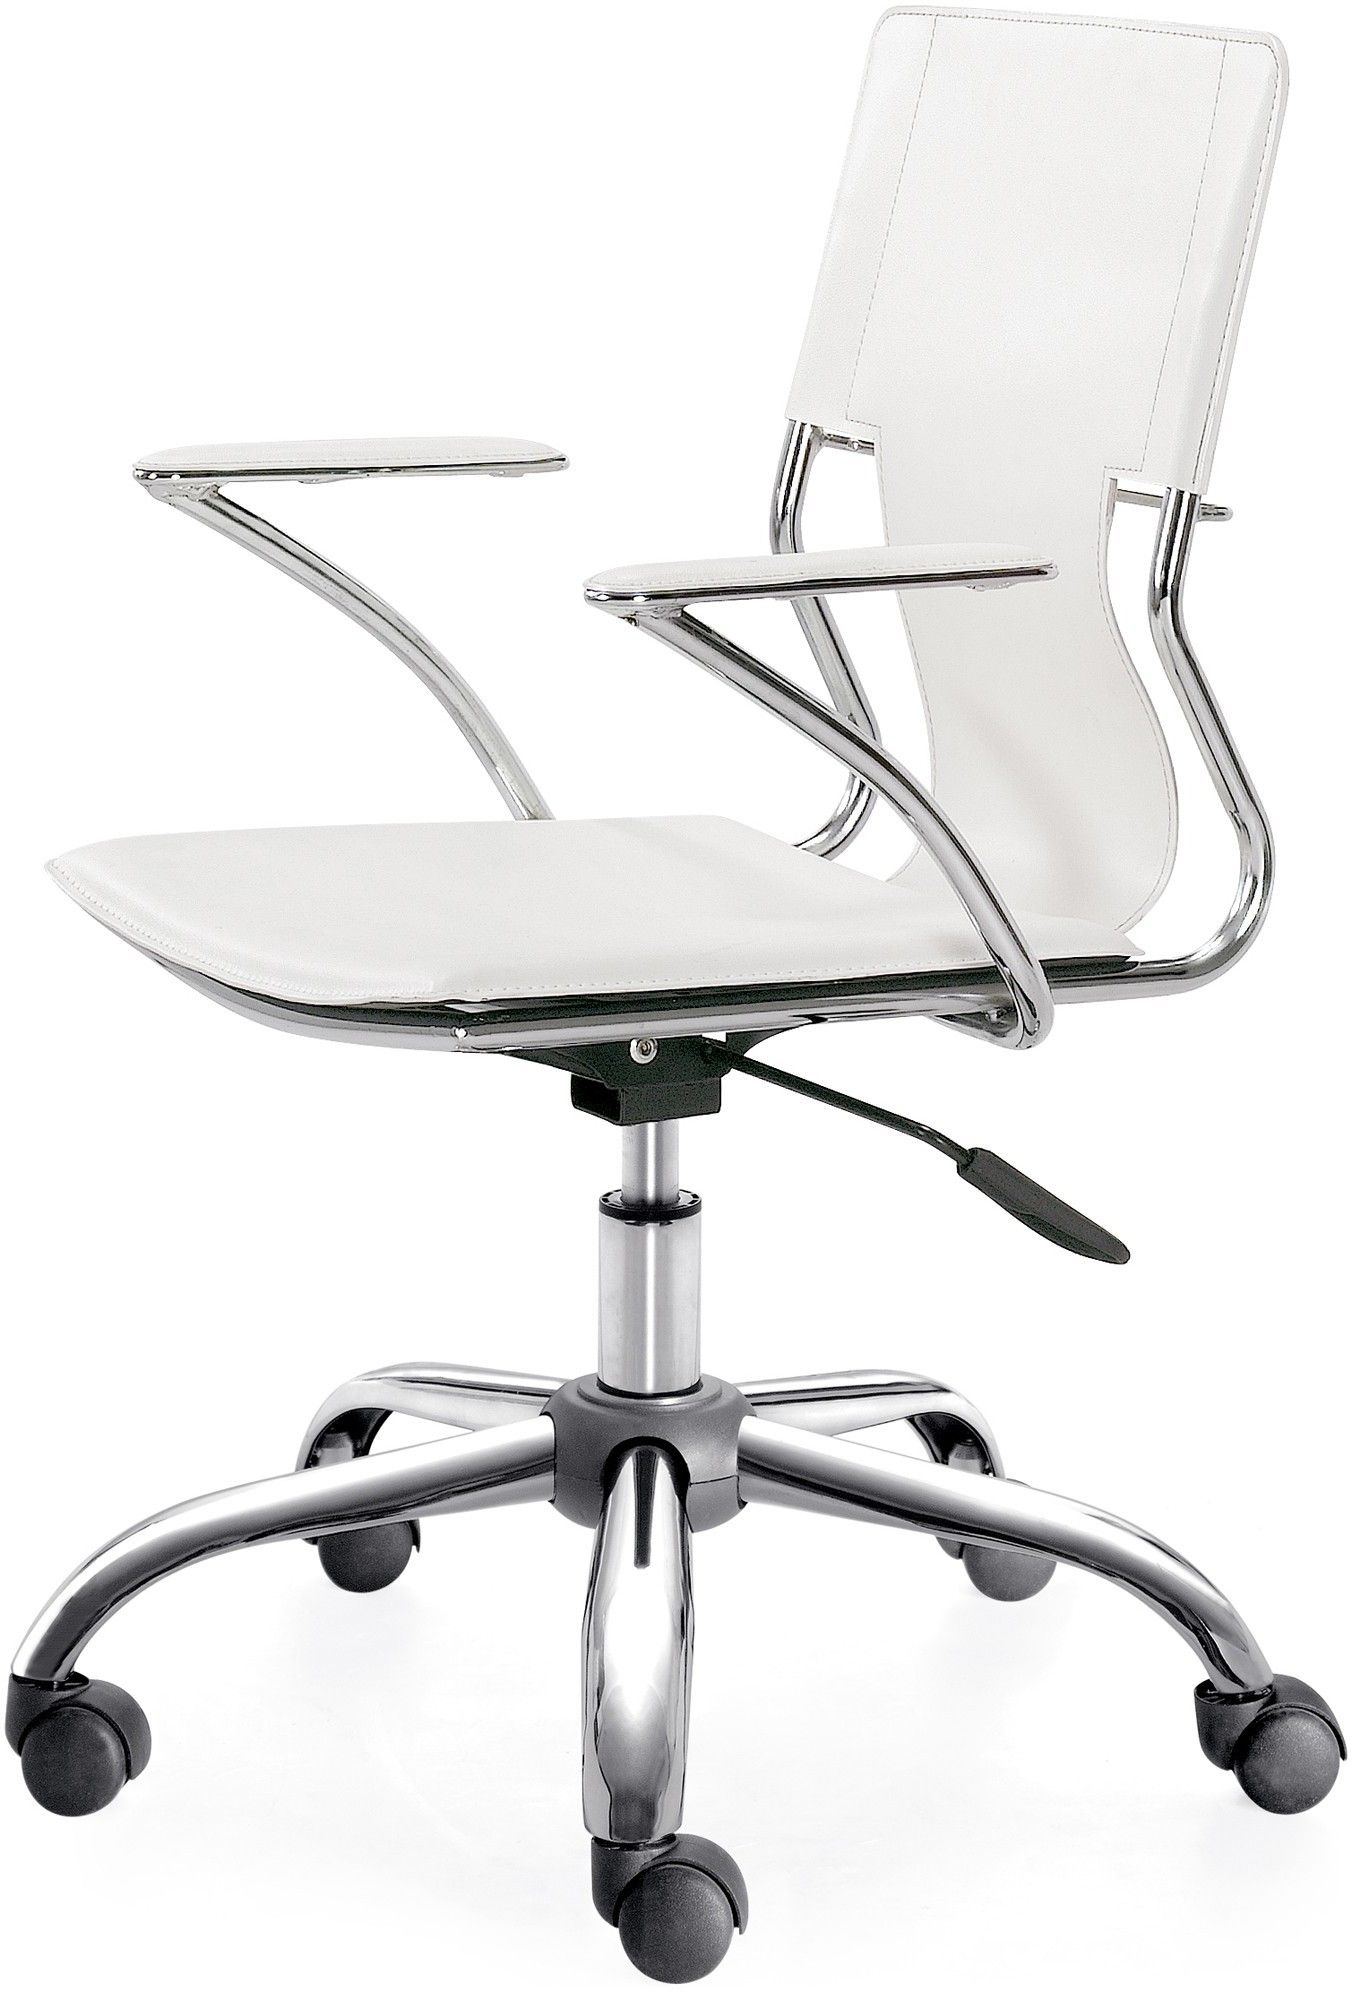 Antique White Office Chair - http://www.imagee.net/antique - Antique White Office Chair - Http://www.imagee.net/antique-white